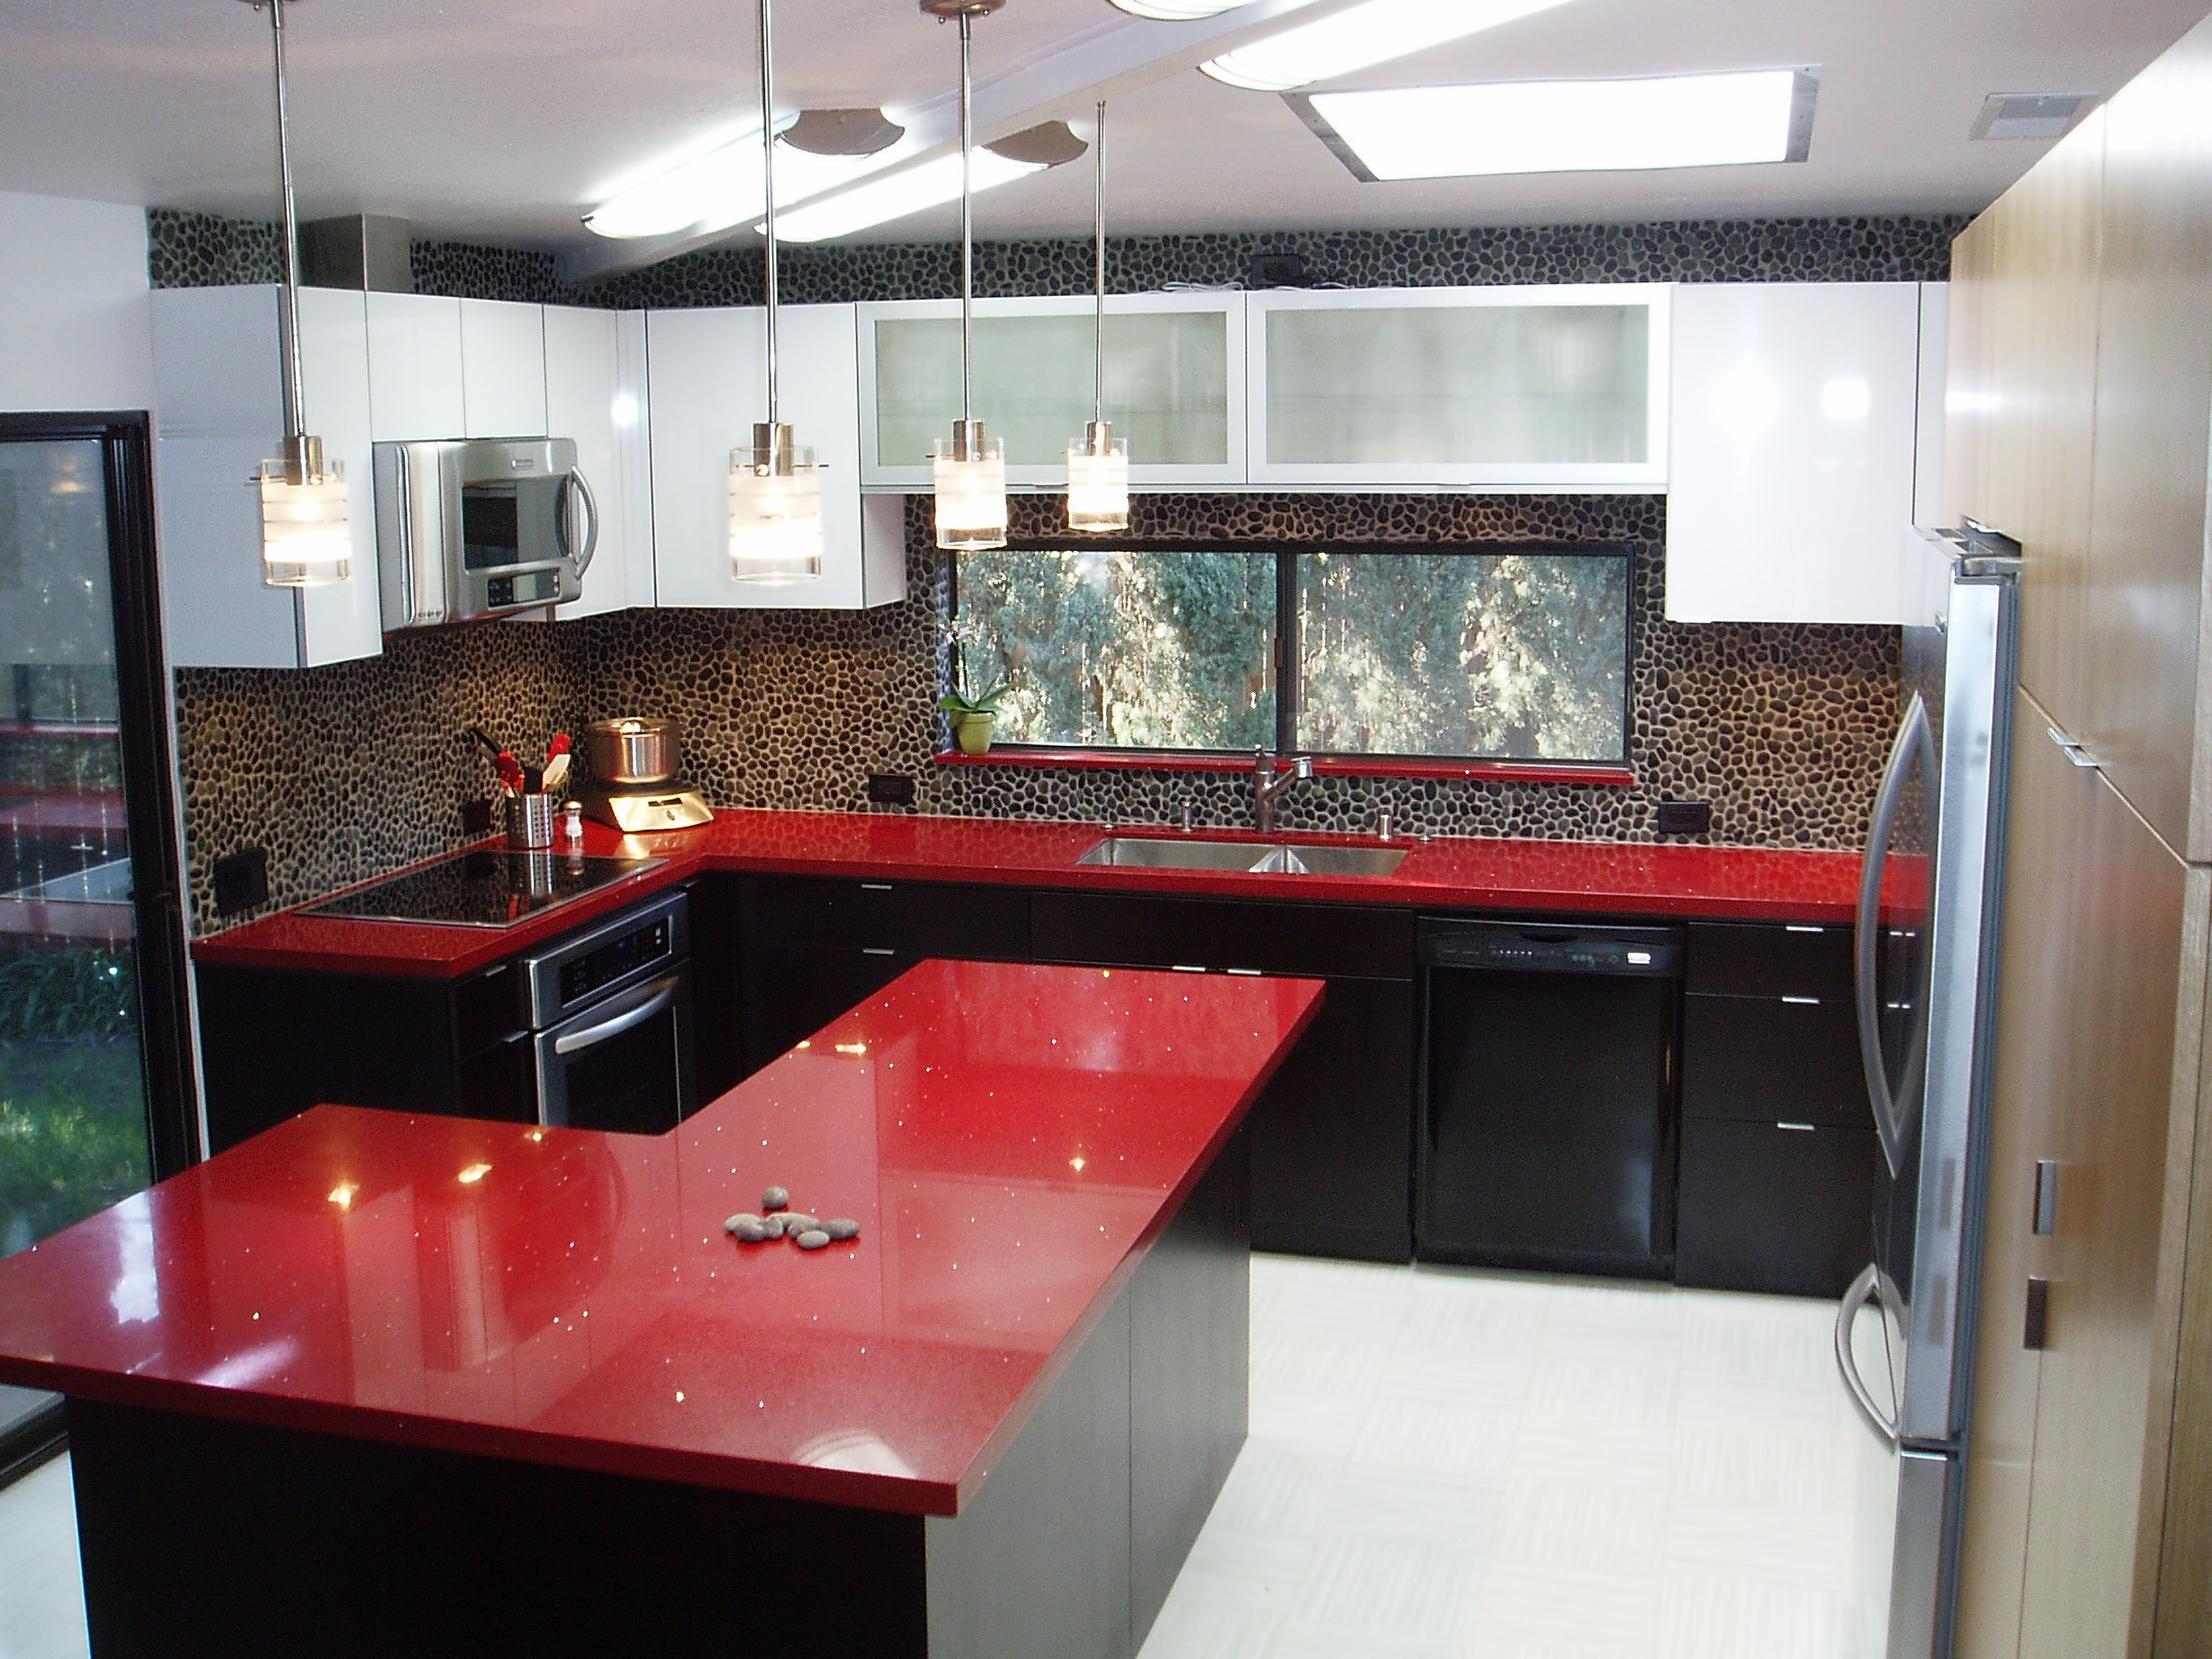 columbia cabinets kitchen cabinets sacramento New Sacramento Kitchen Completed March 17 3 Comments